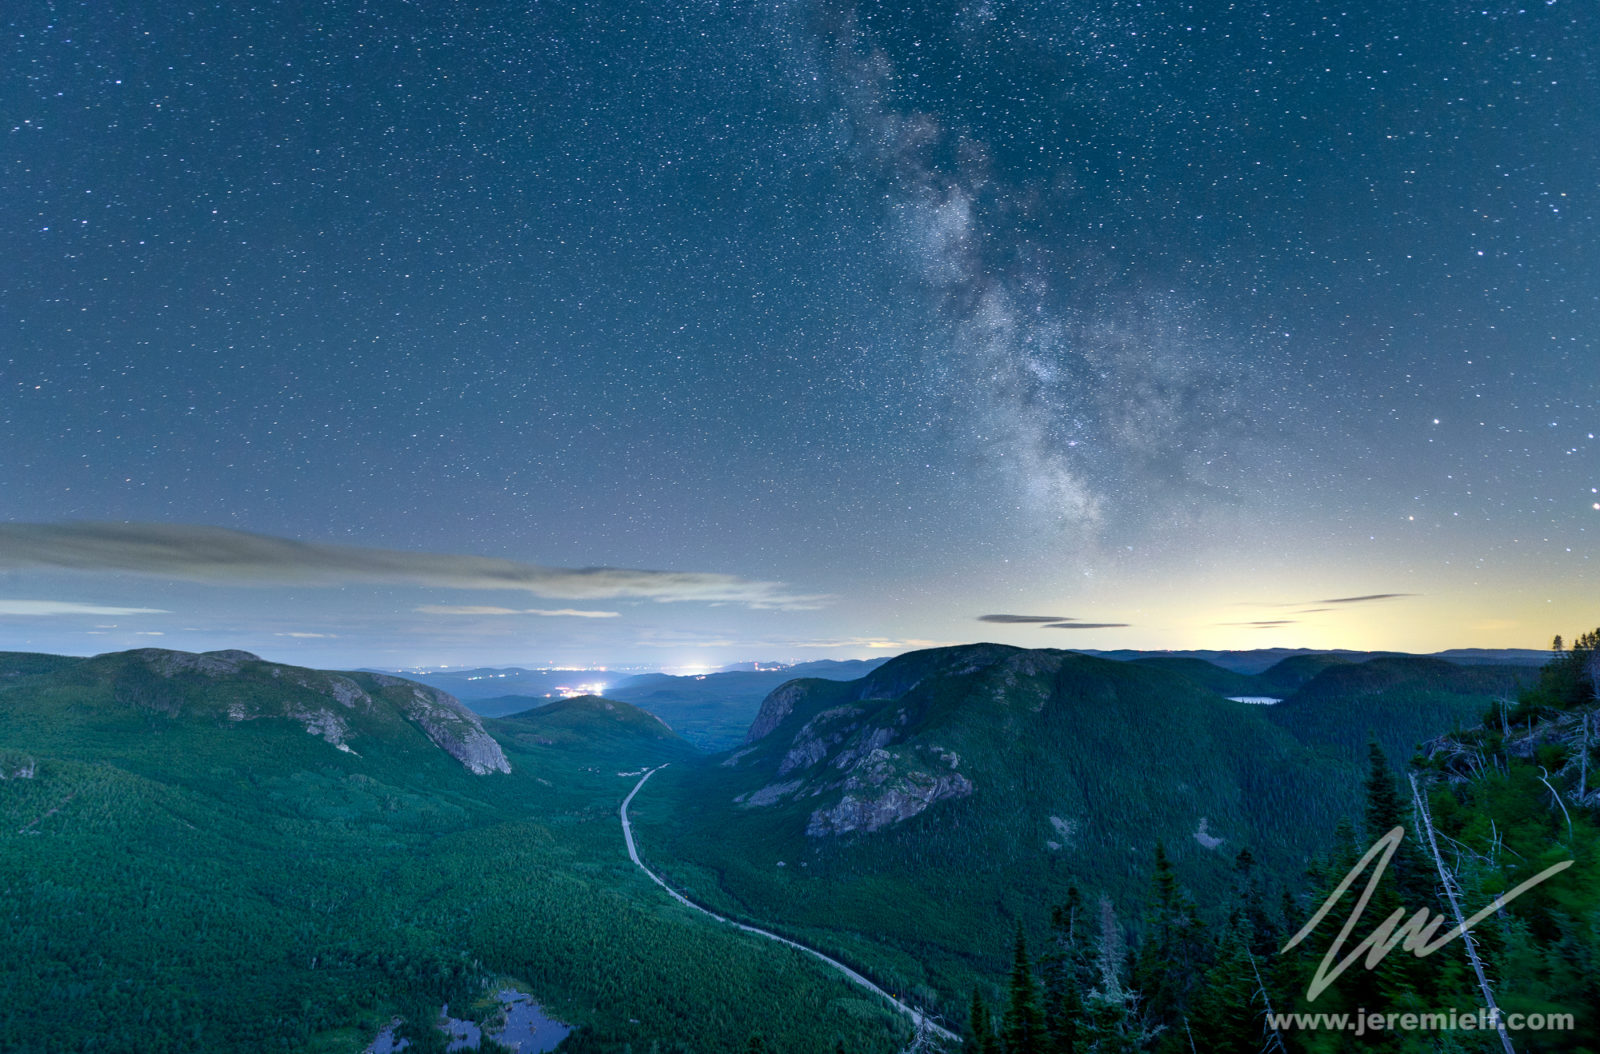 Milky way over the valley